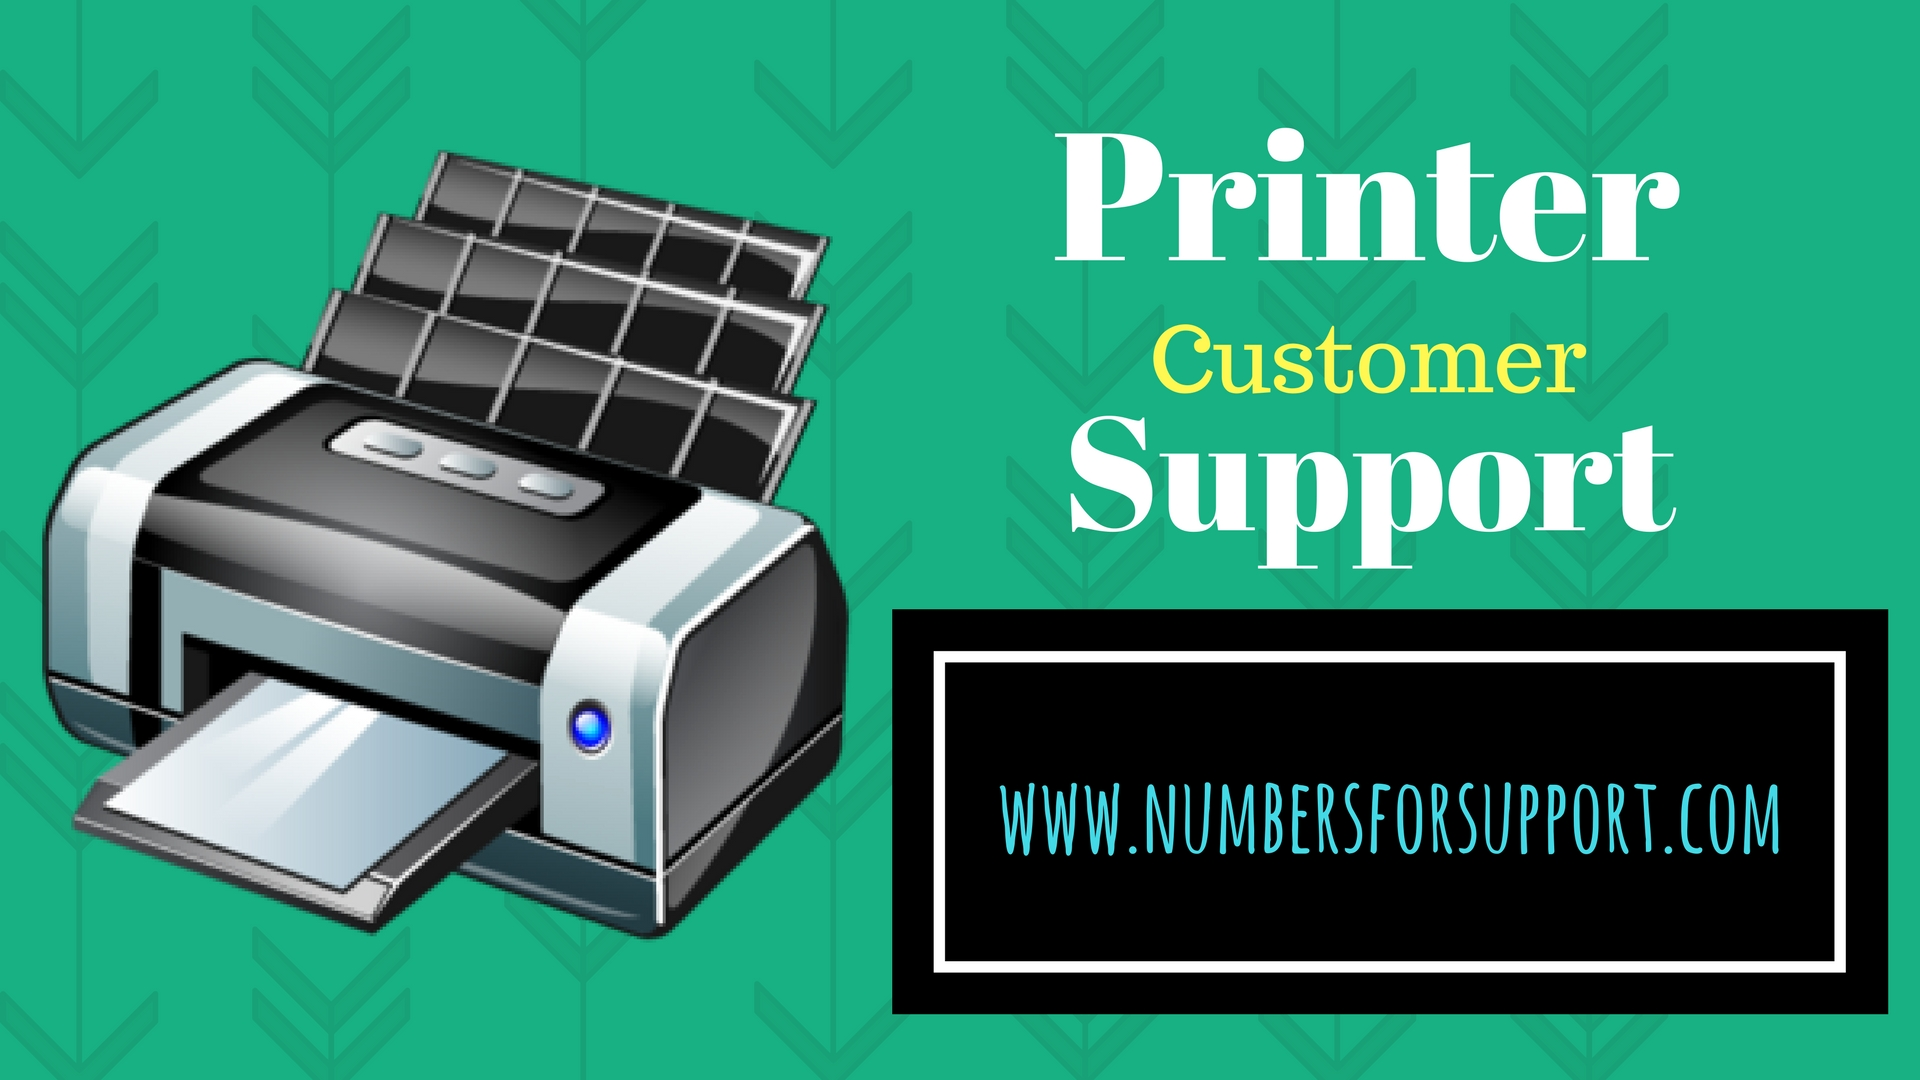 Canon service Support tool Sst software v4 11